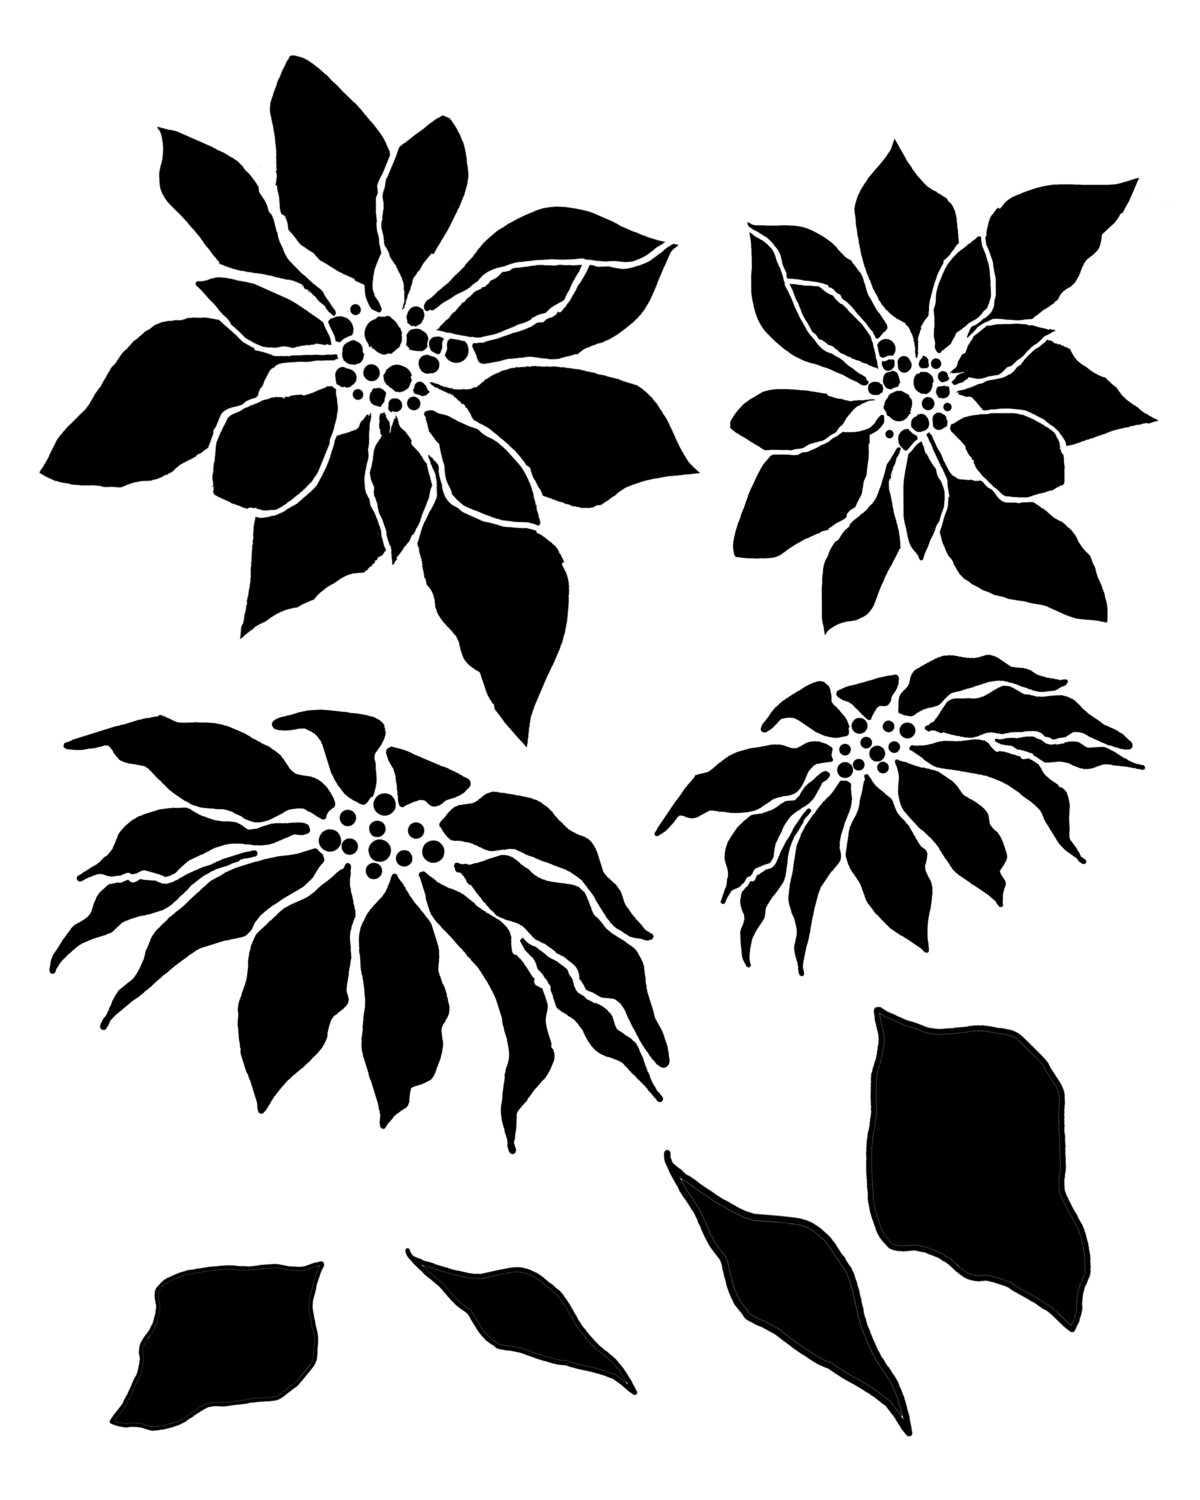 Poinsettia and Leaves stencil